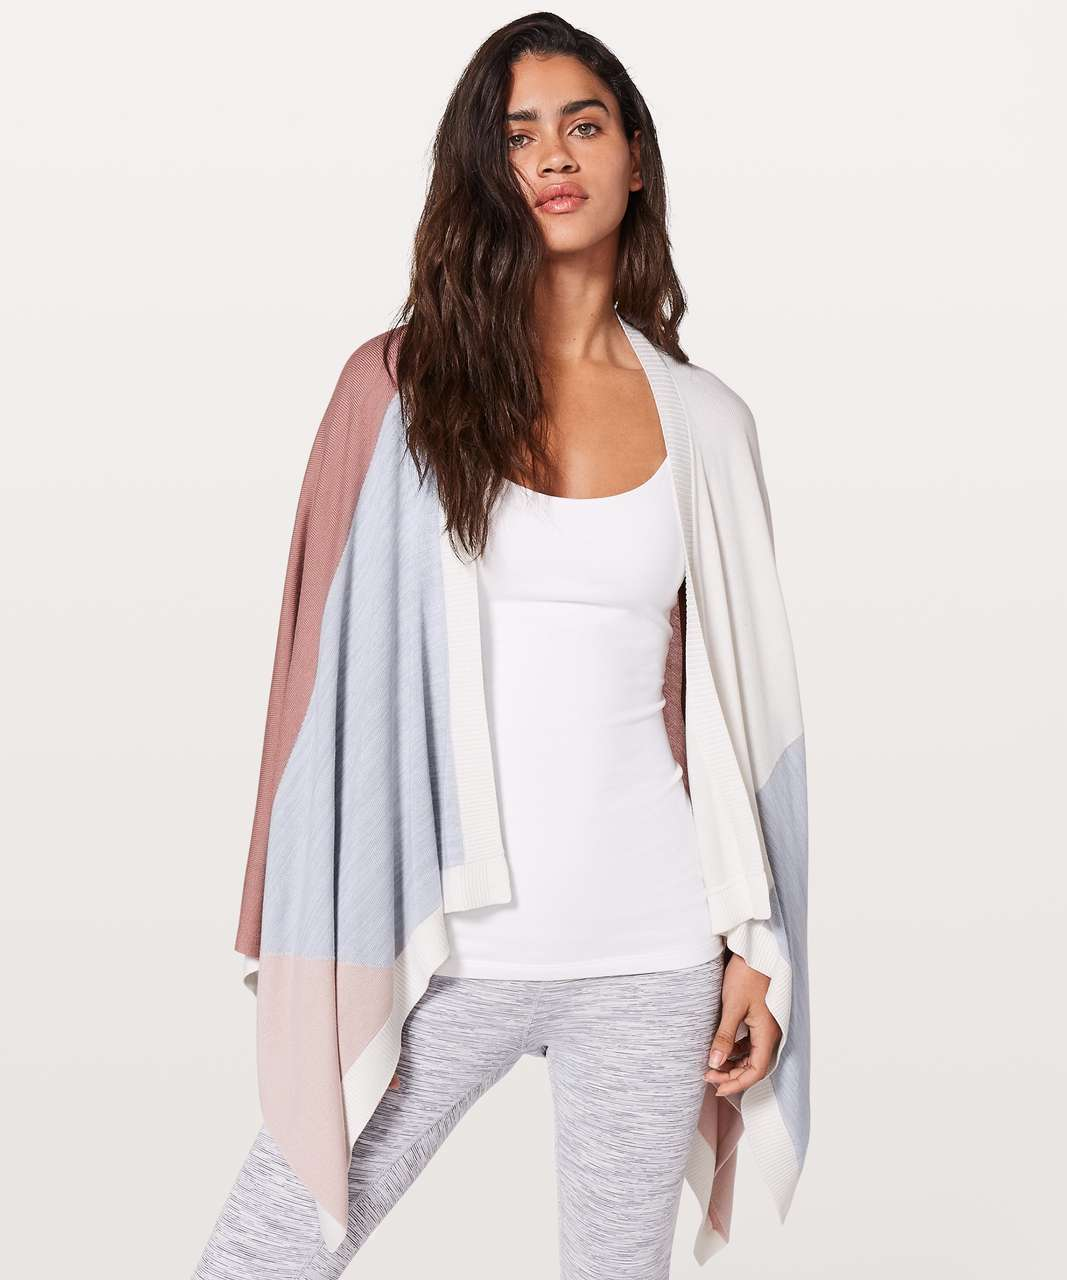 Lululemon Hatha Wrap - Quicksand / Misty Pink / Silver Fox / Alpine White